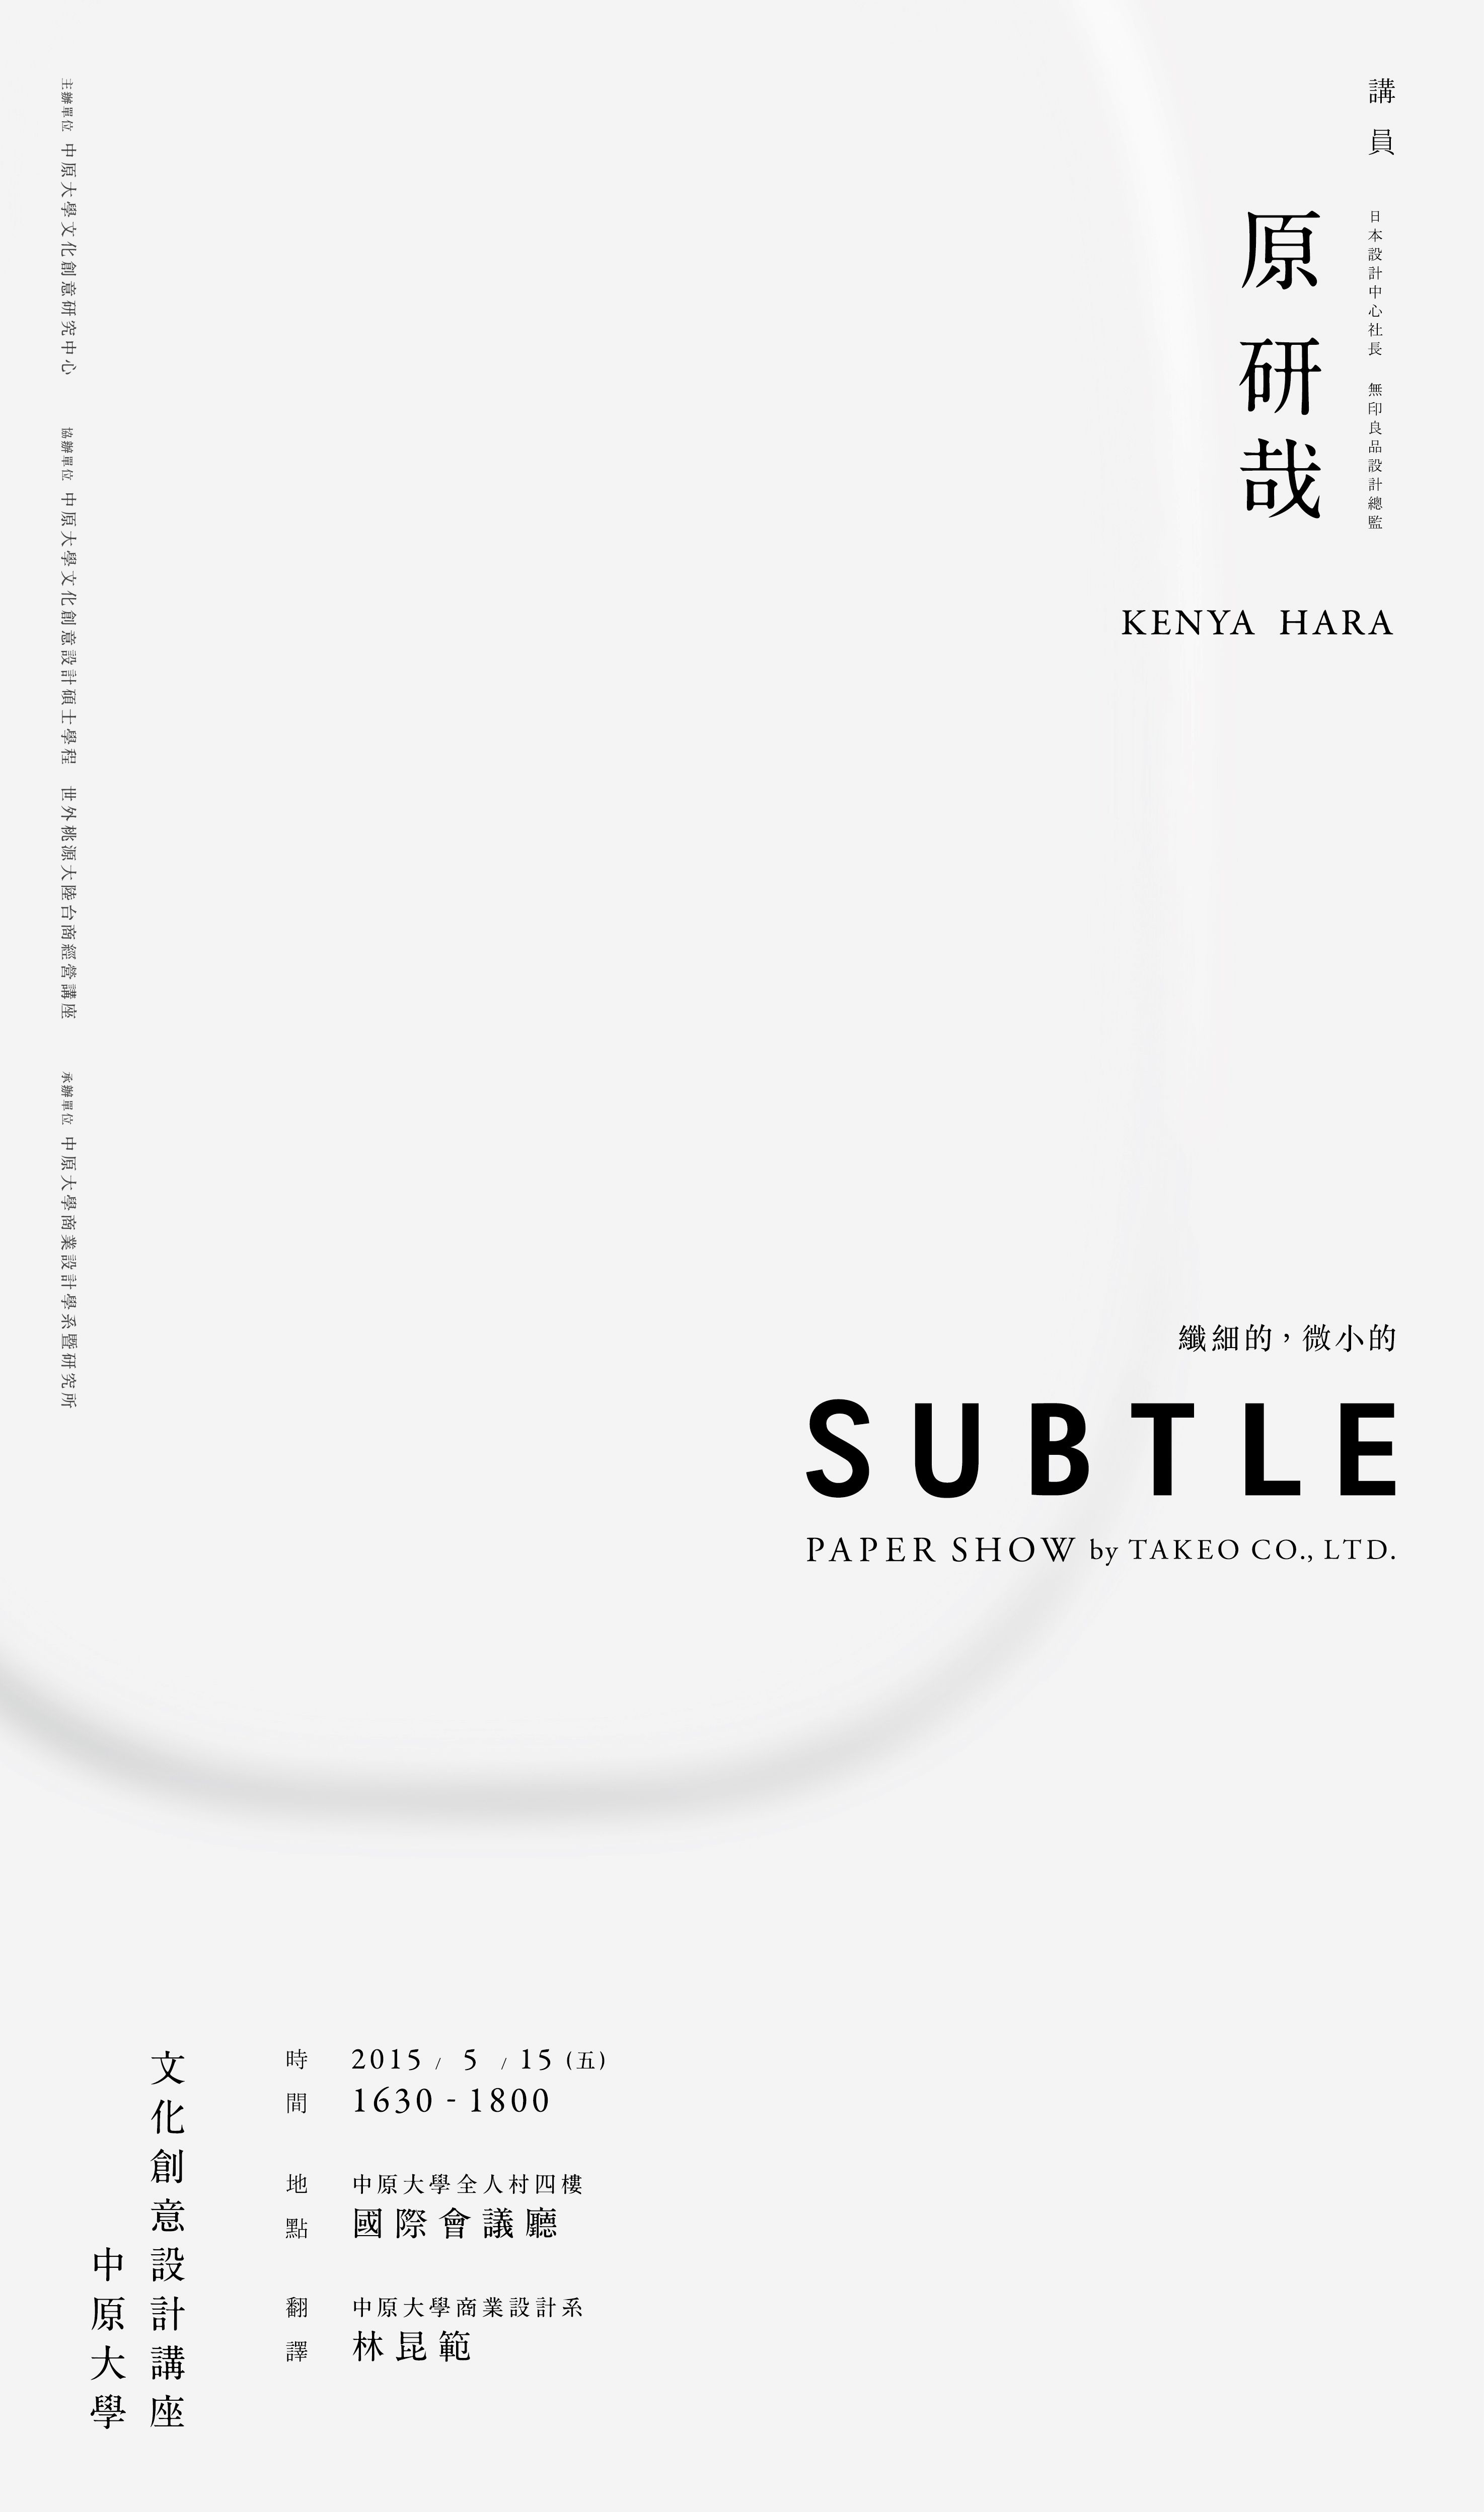 Kenya hara graphic design in cycu subtle poster layout also qingche on pinterest rh